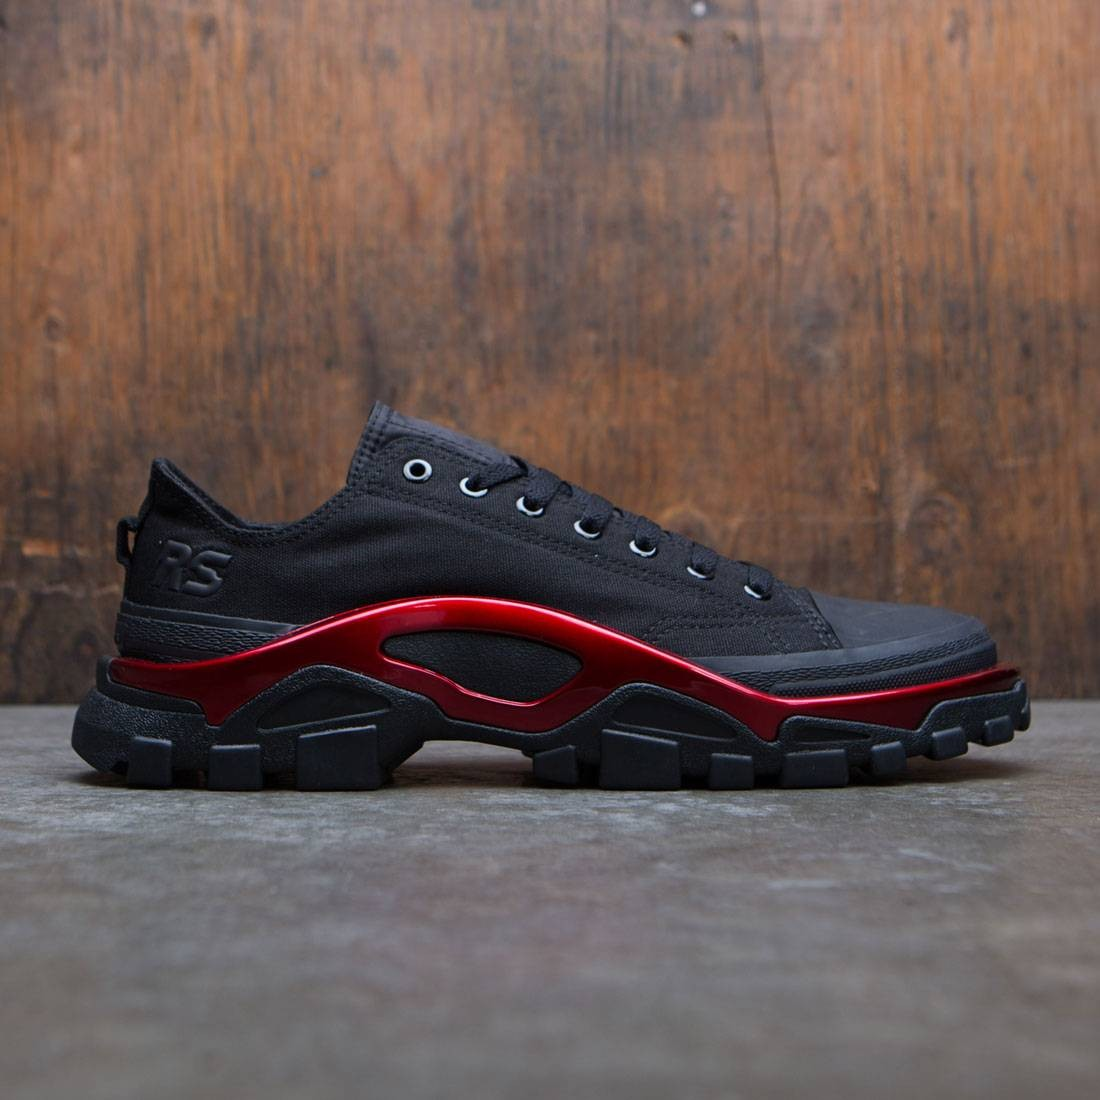 Adidas x Raf Simons Men New Runner (black / scarlet / core black)